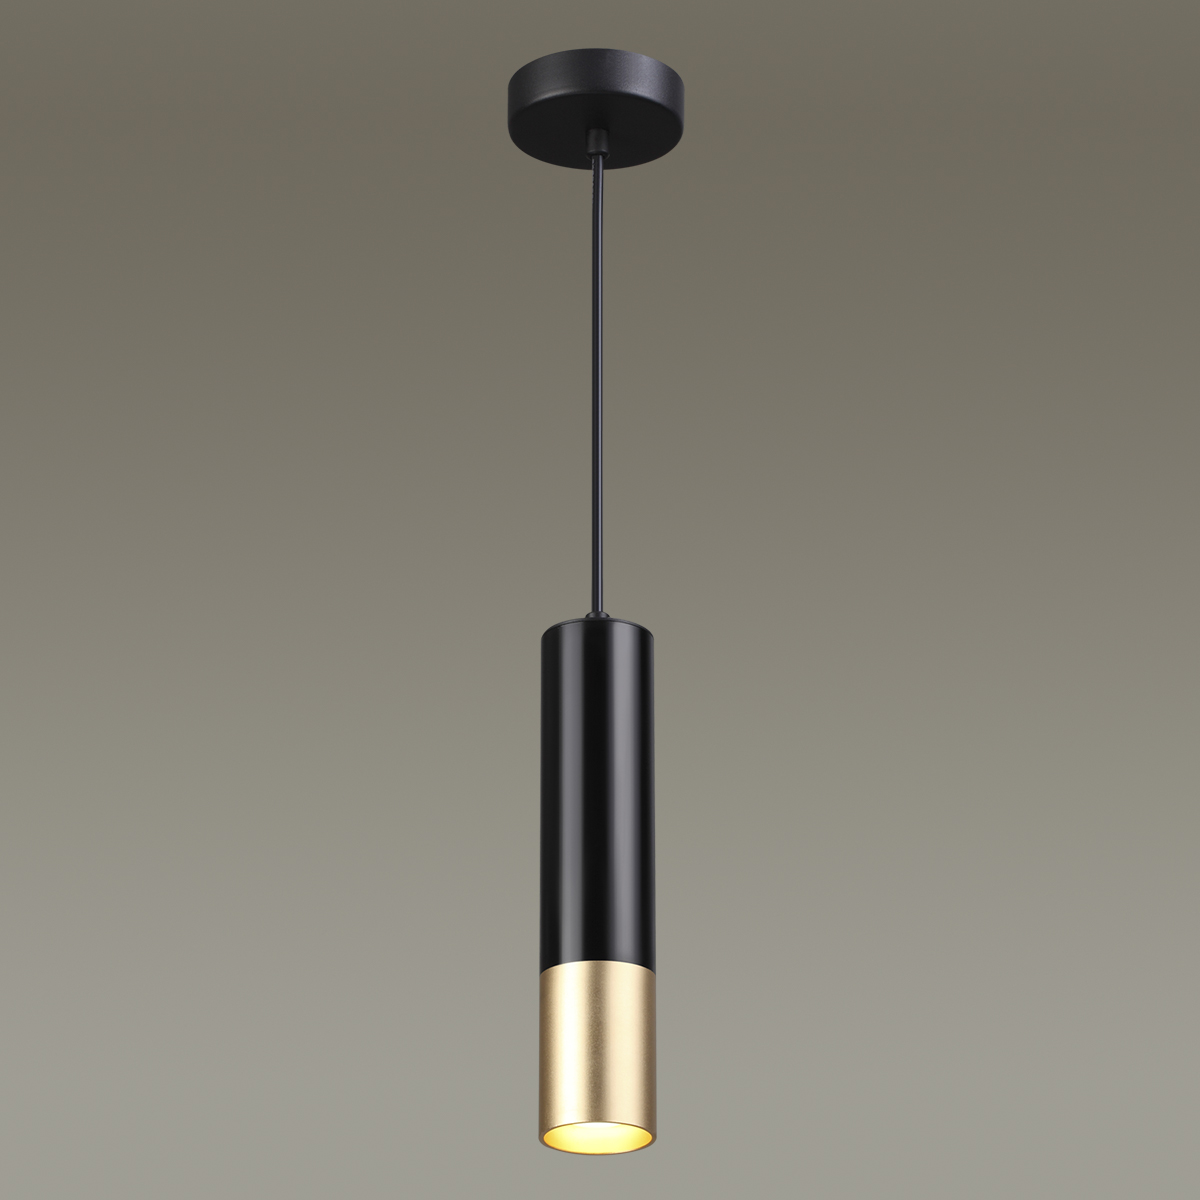 Подвес ODEON LIGHT арт. 3876/1L